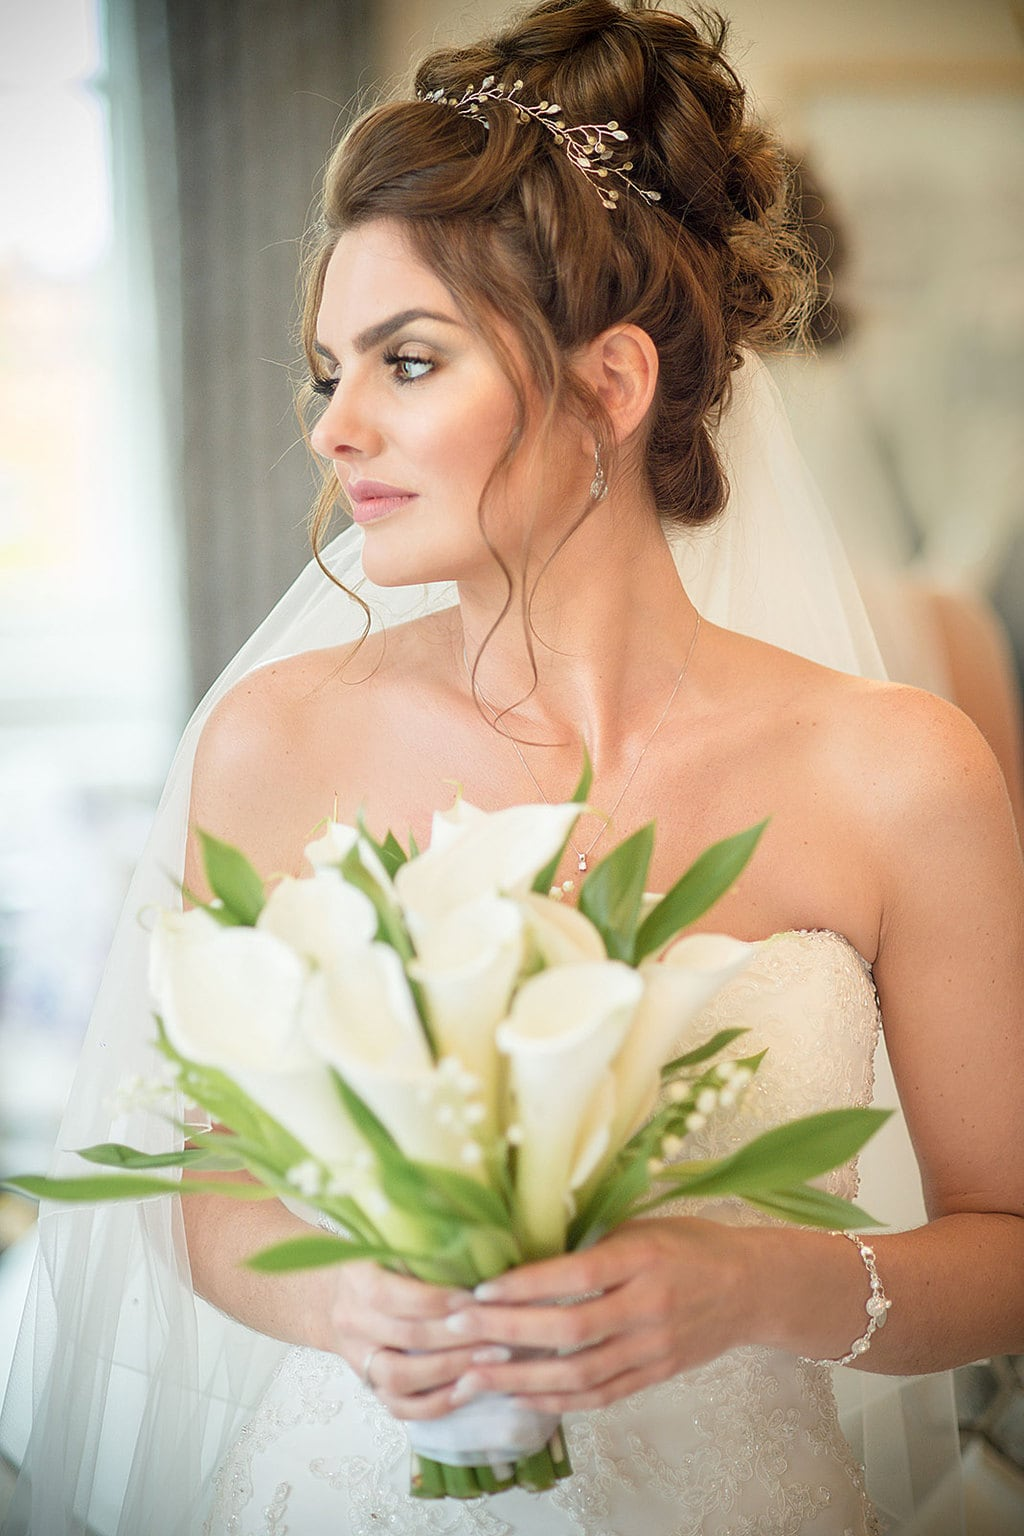 Iscoyd Park Shropshire Wedding Light Dreamy Bride Calla Lilie Bouquet Catherine Bradley Photography